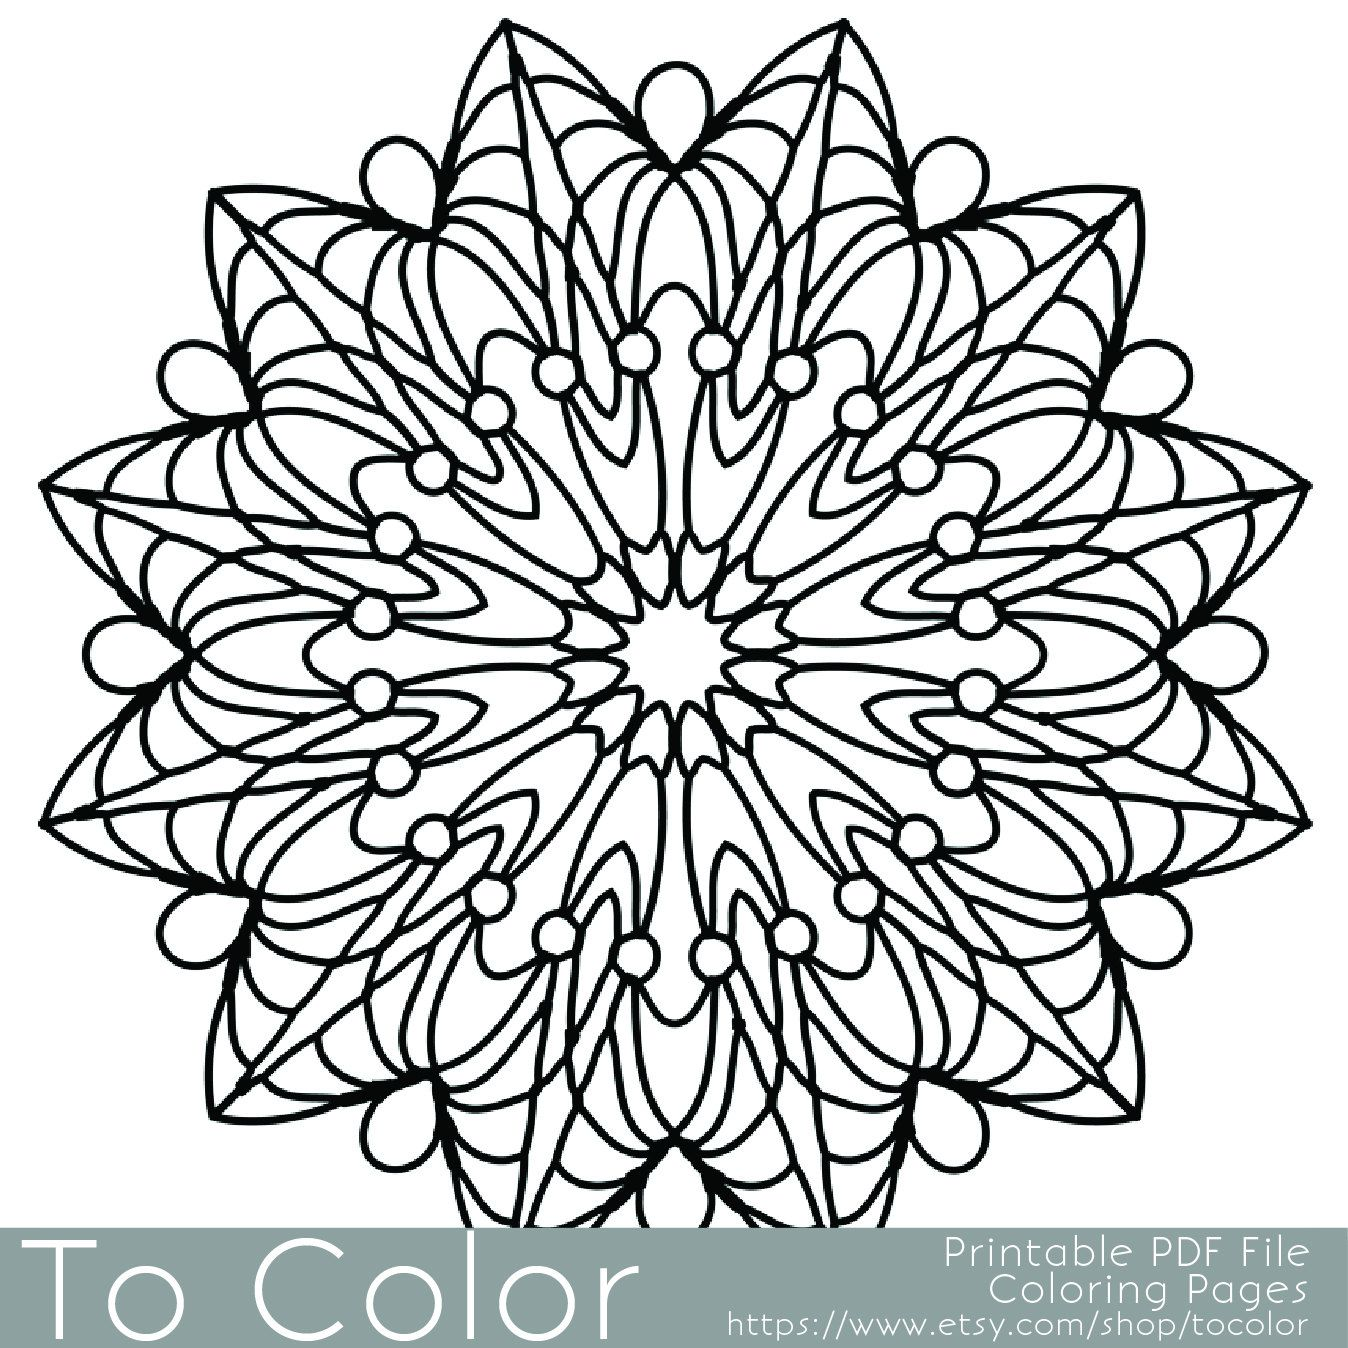 Simple Printable Coloring Pages For Adults Gel Pens Mandala Pattern Pdf Jpg Instant Download Mandala Coloring Pages Mandala Coloring Books Coloring Pages